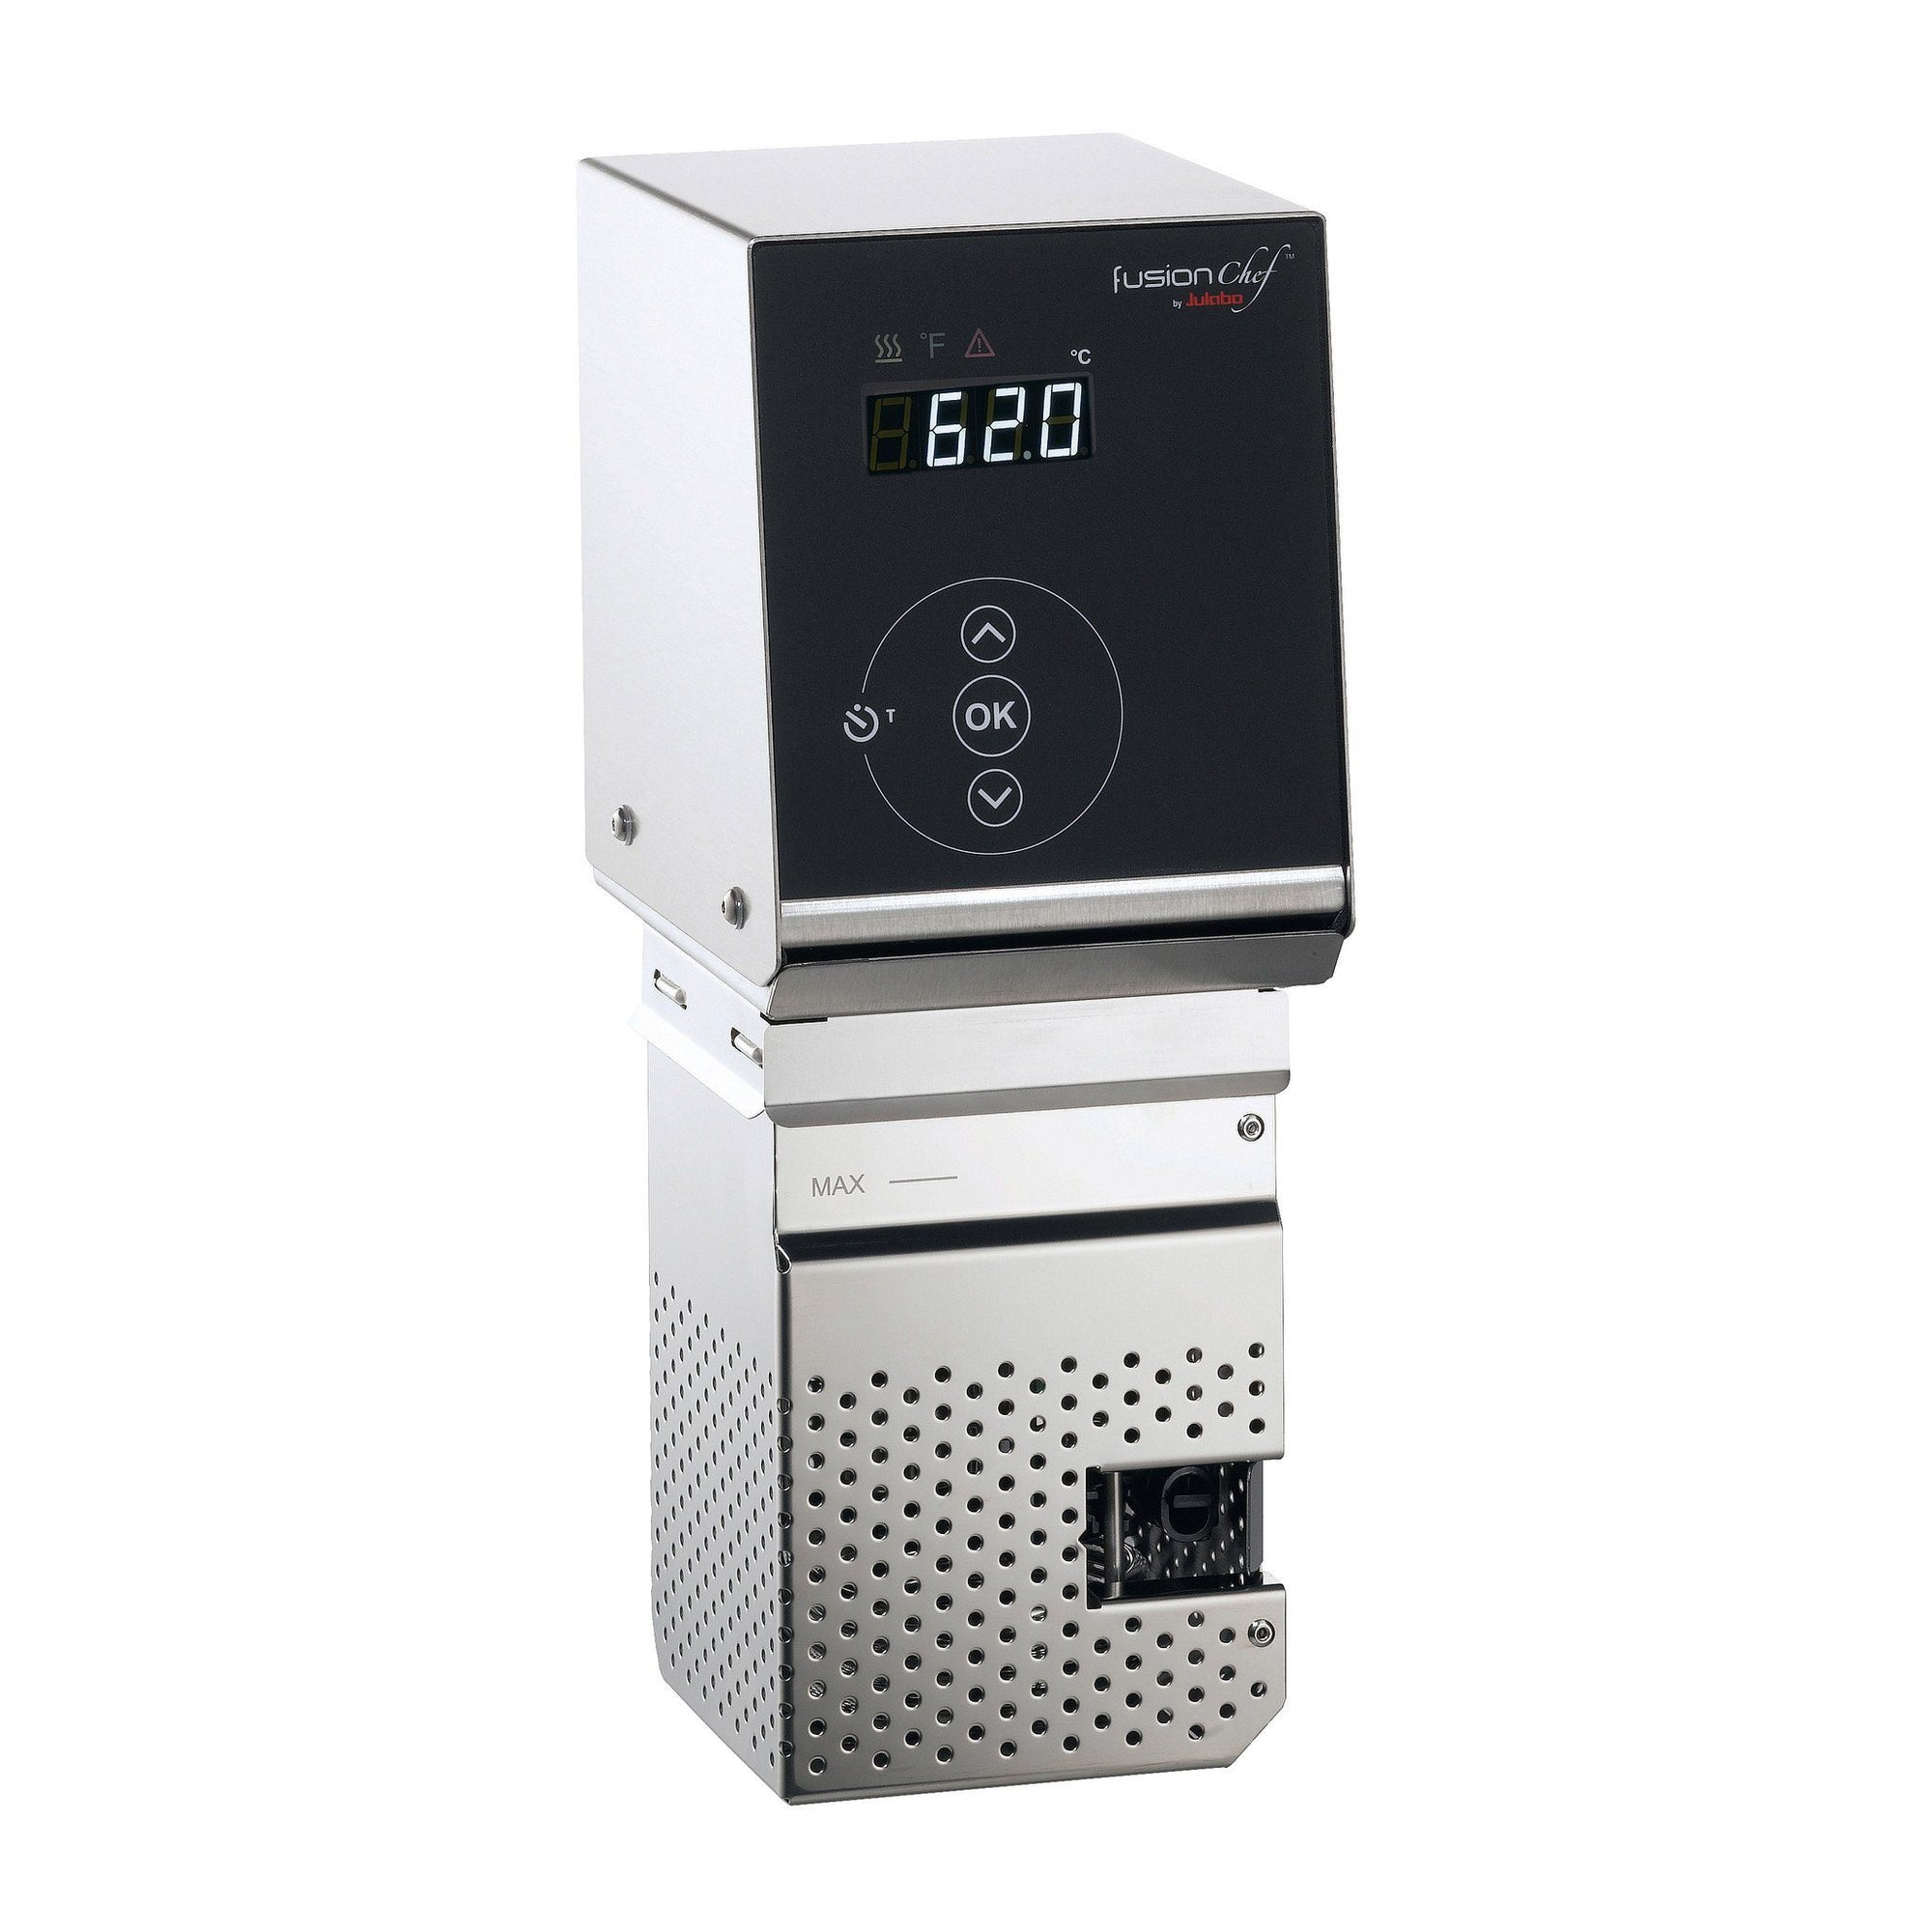 Fusionchef Pearl Premium Sous Vide Immersion Circulator Immersion Circulator FusionChef